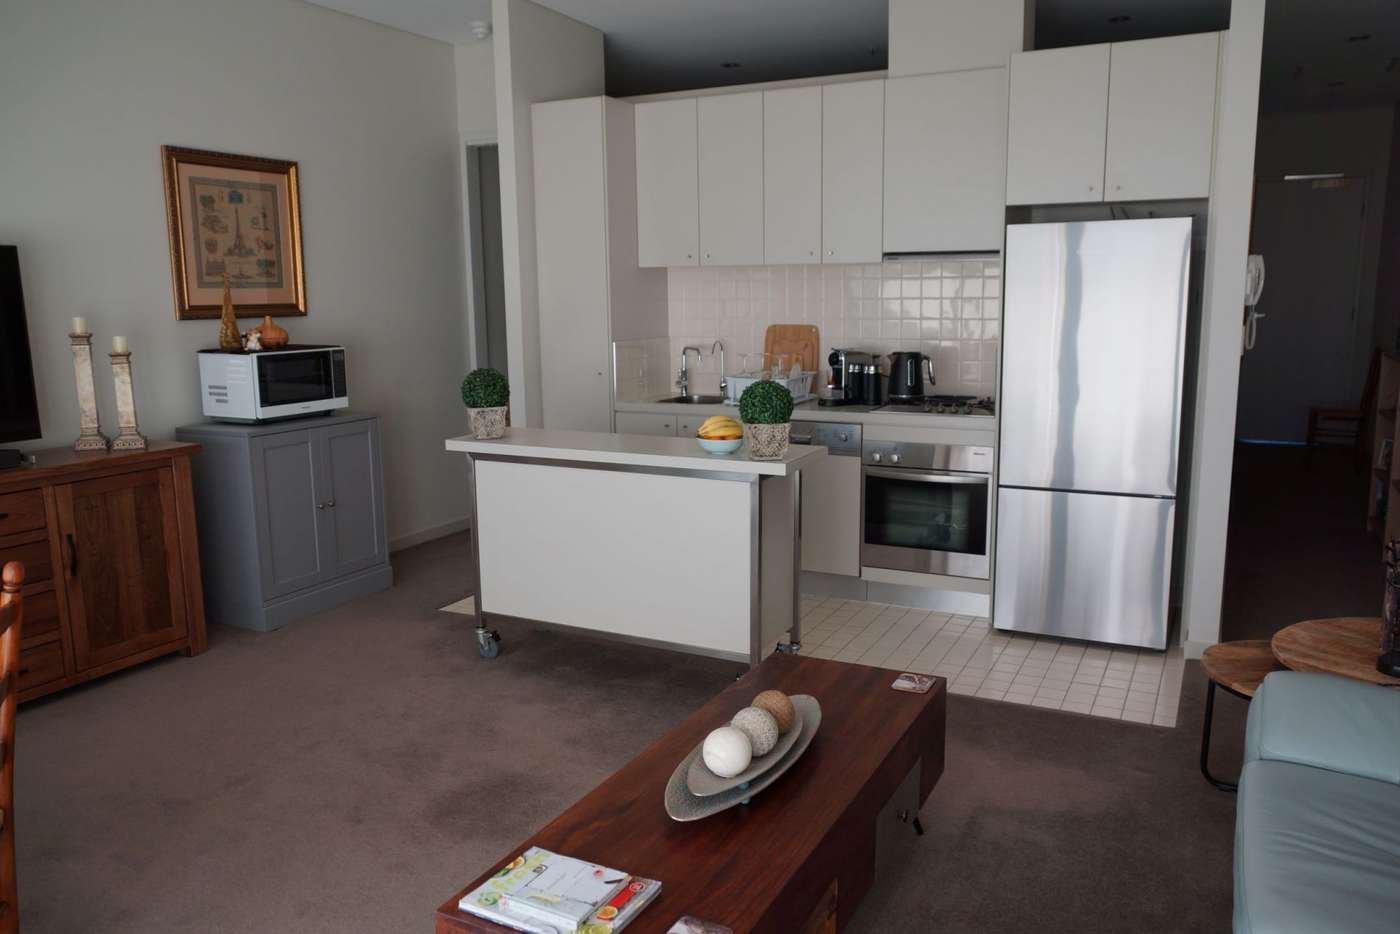 Sixth view of Homely apartment listing, Apartment 66/220 Greenhill Road, Eastwood SA 5063